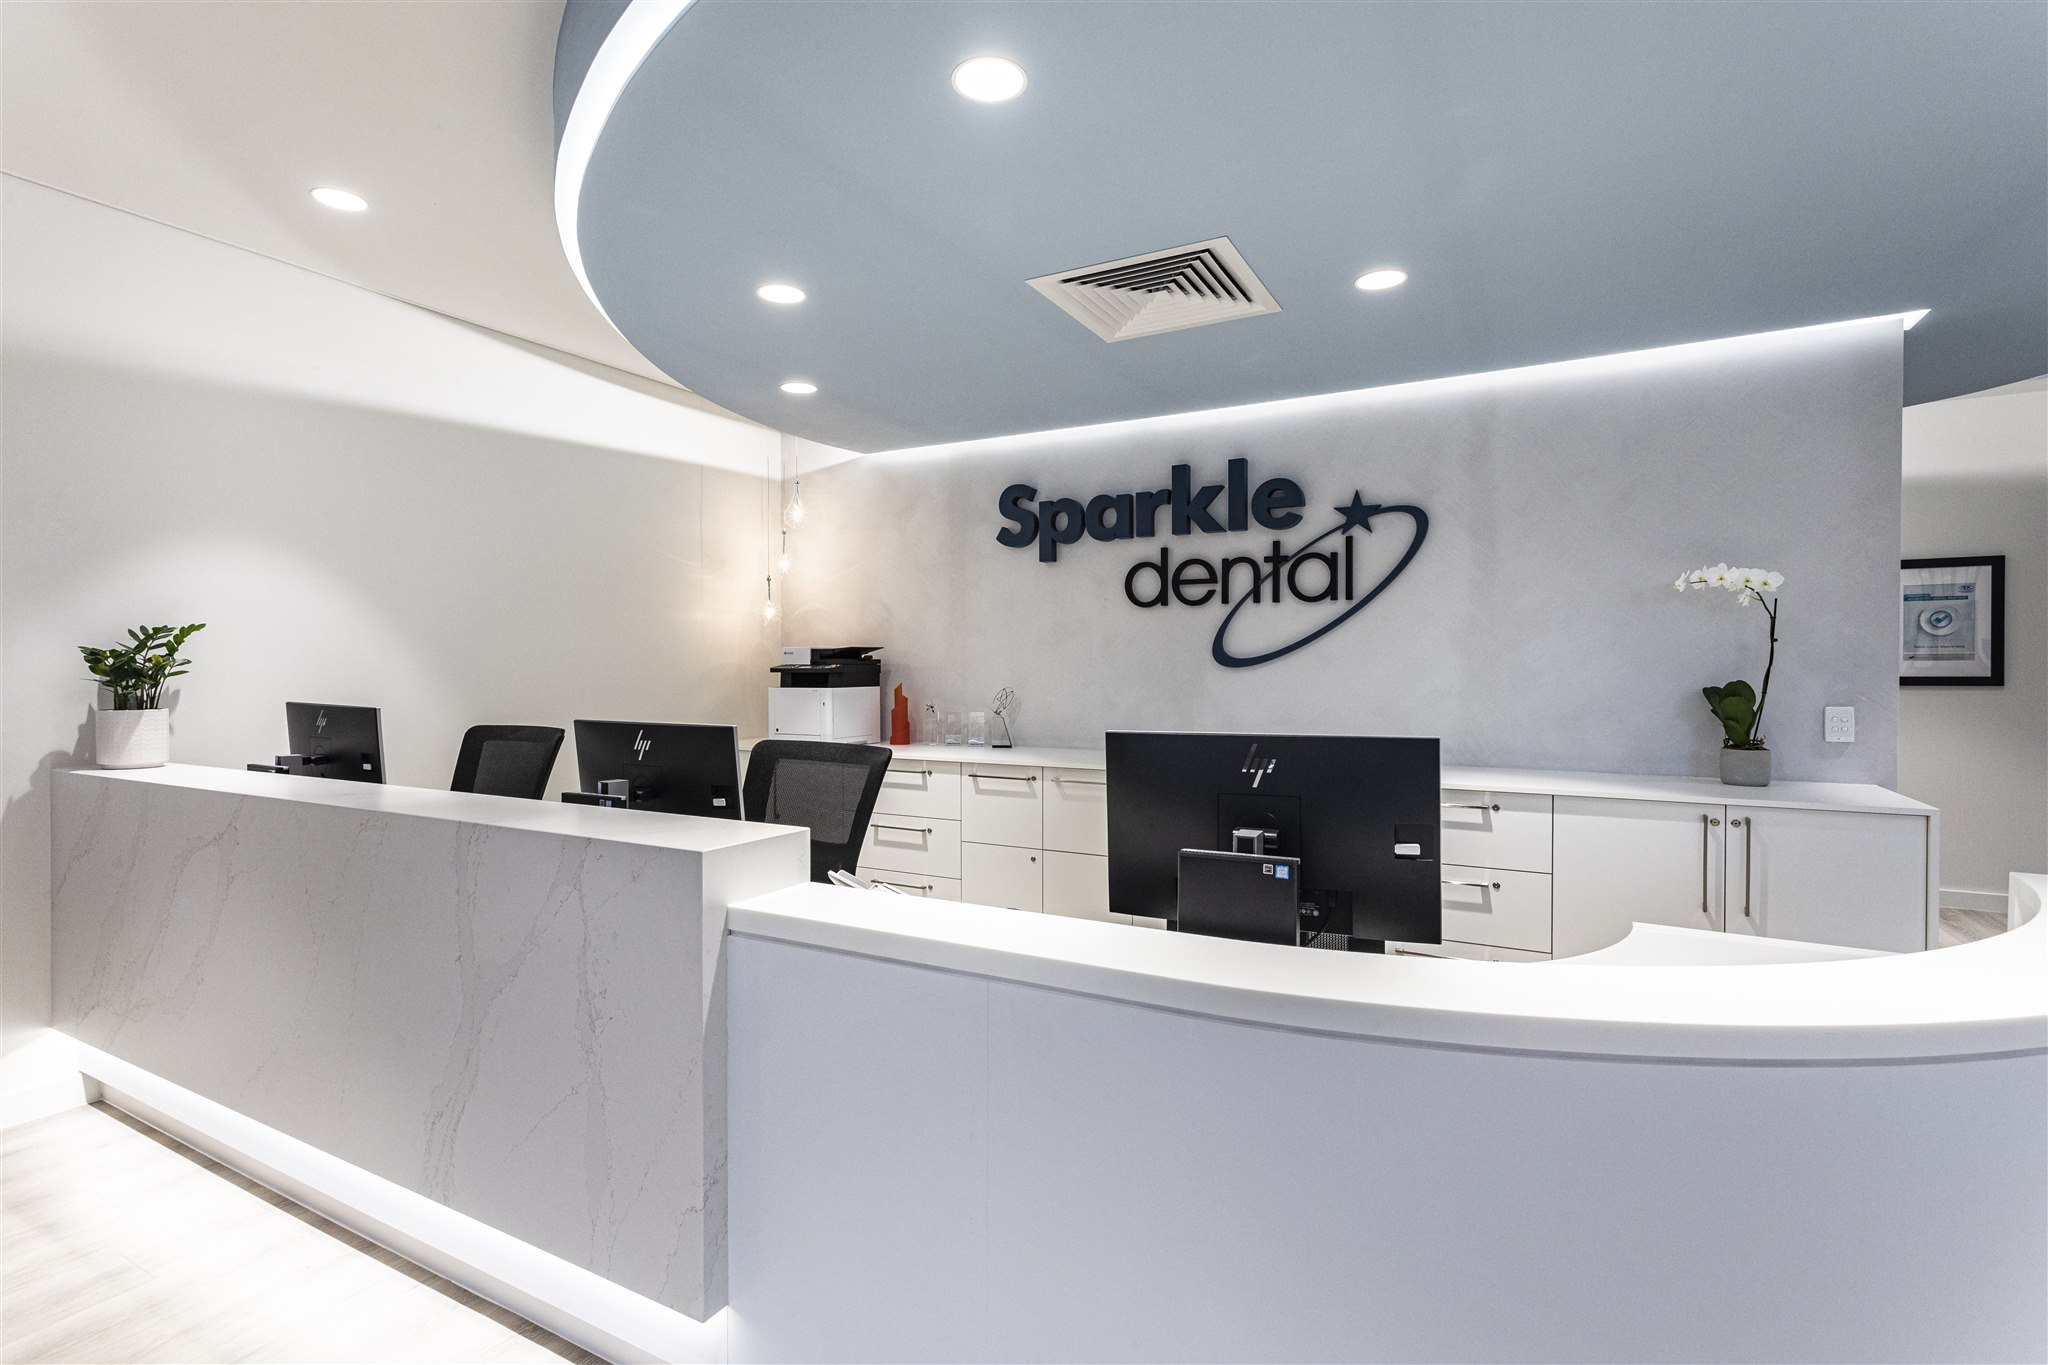 SPARKLE DENTAL